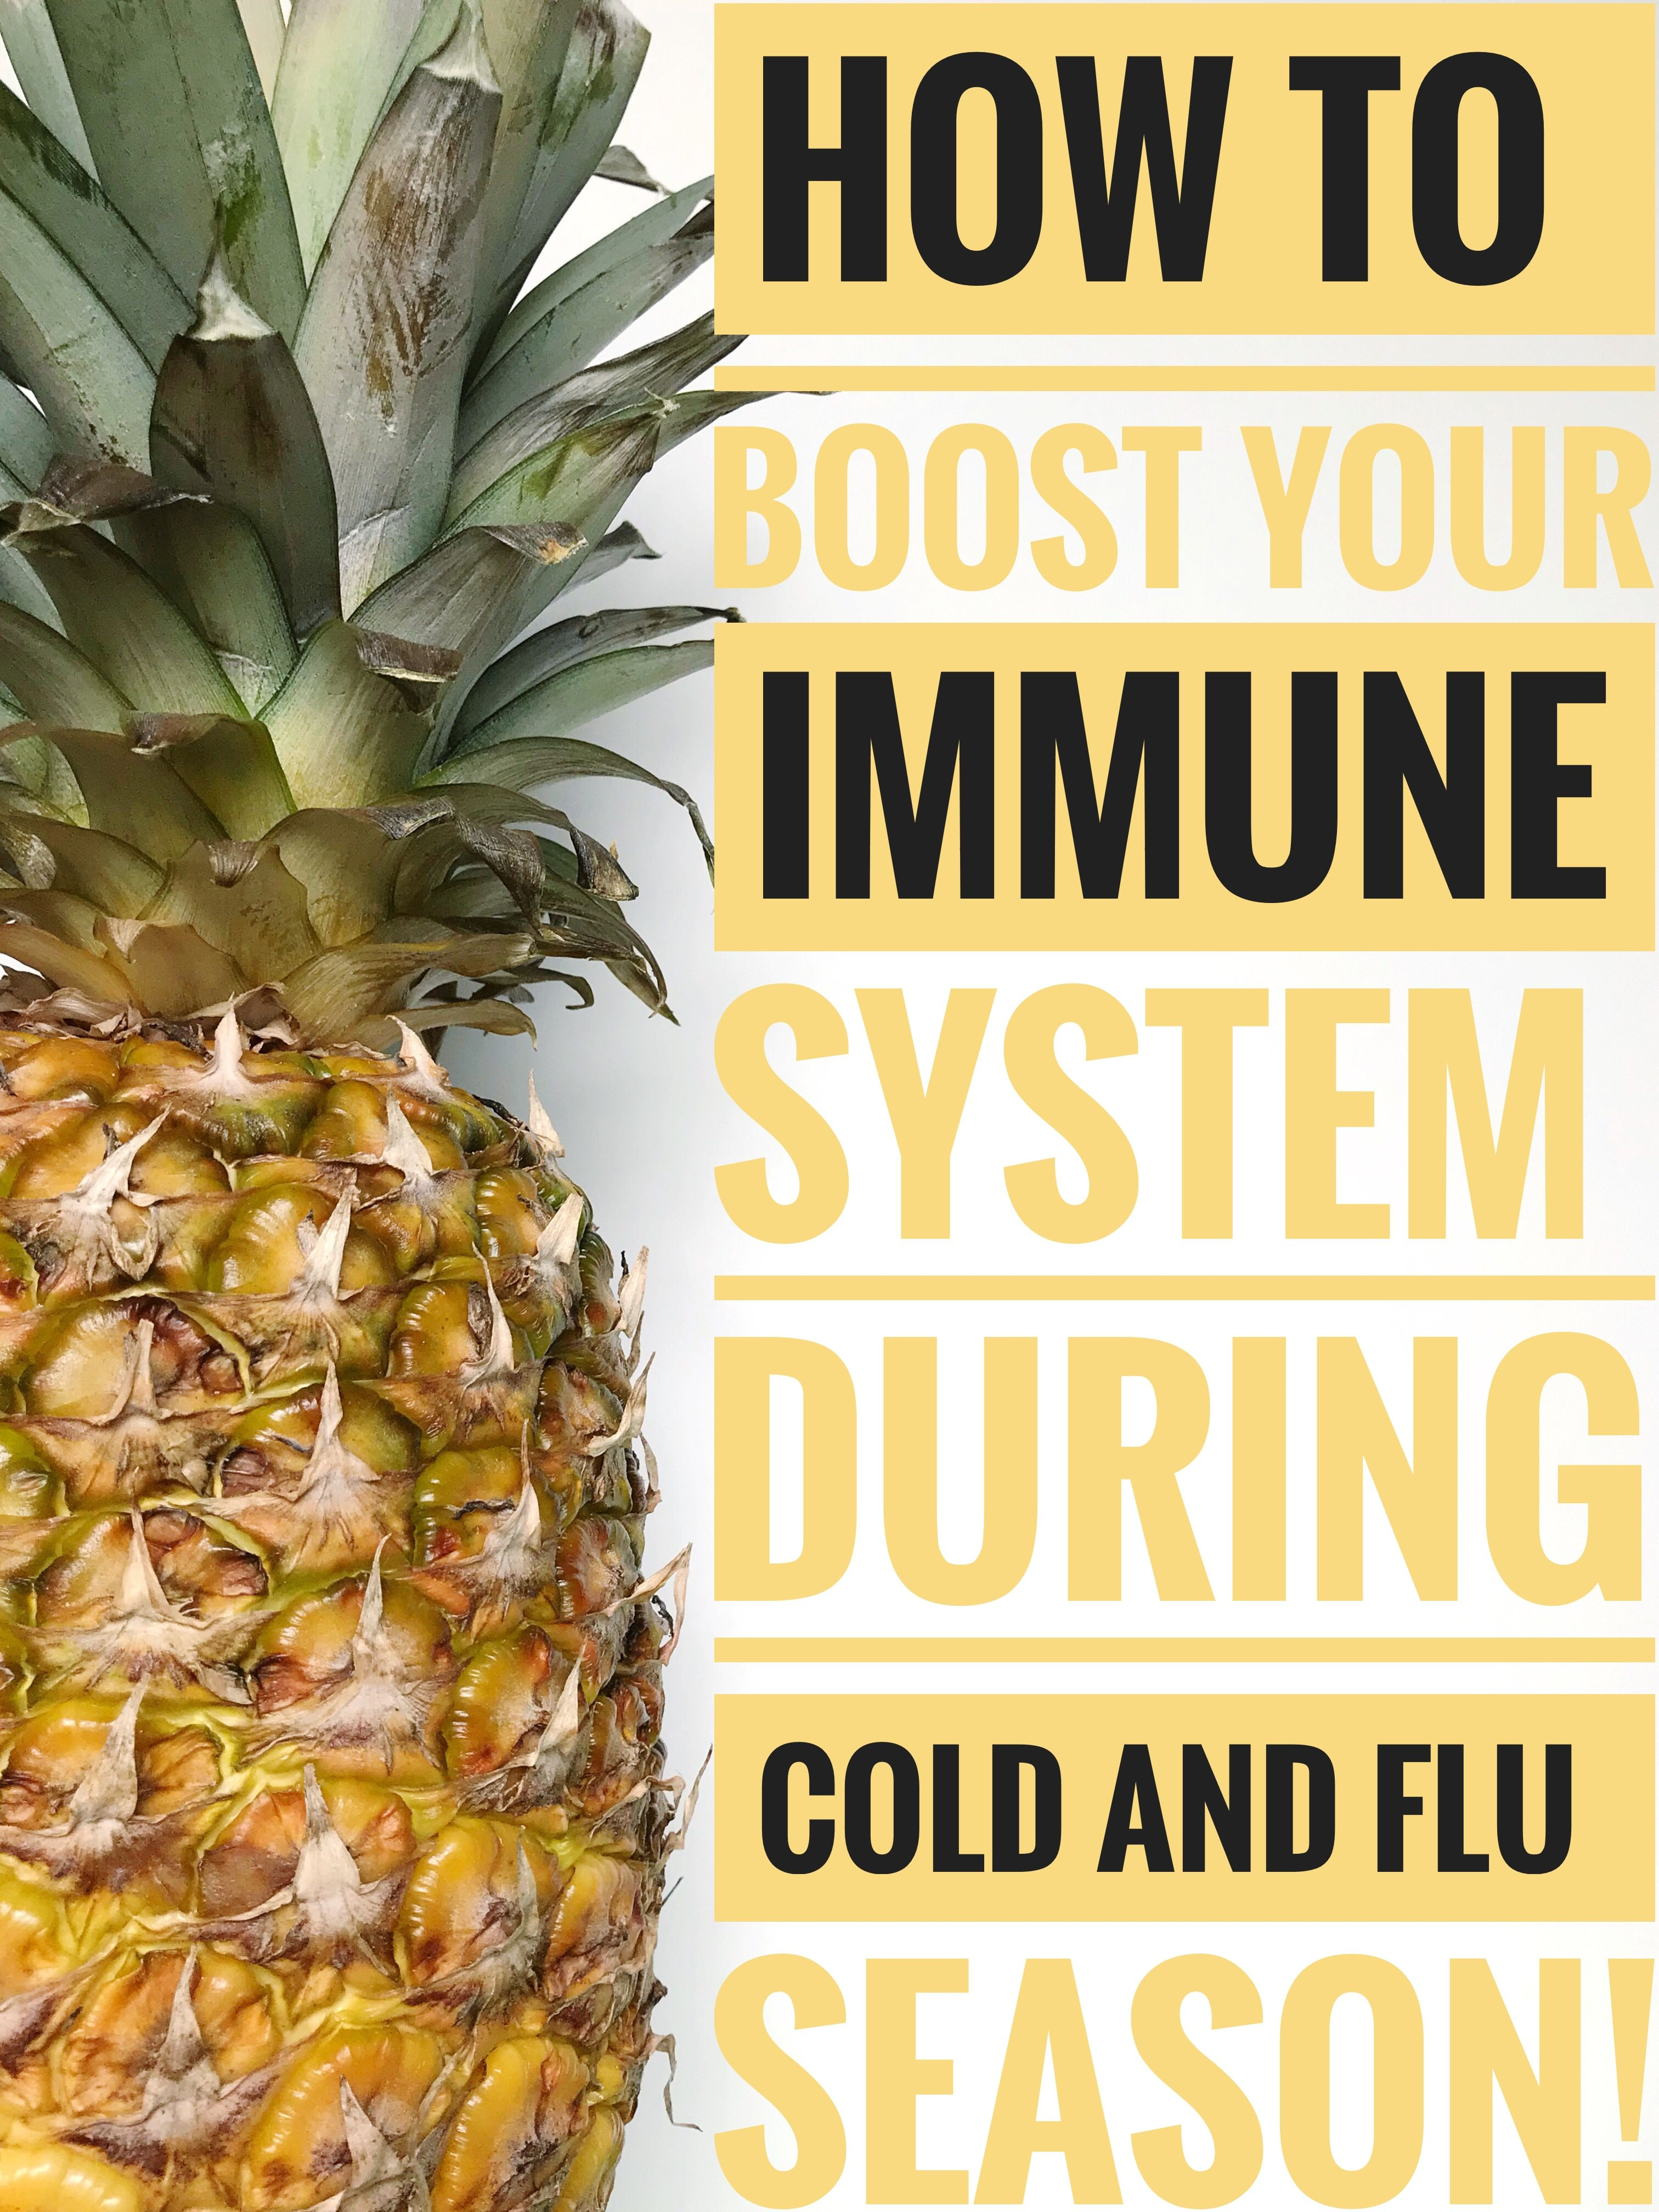 How to Fight the Flu with Pineapple Juice images